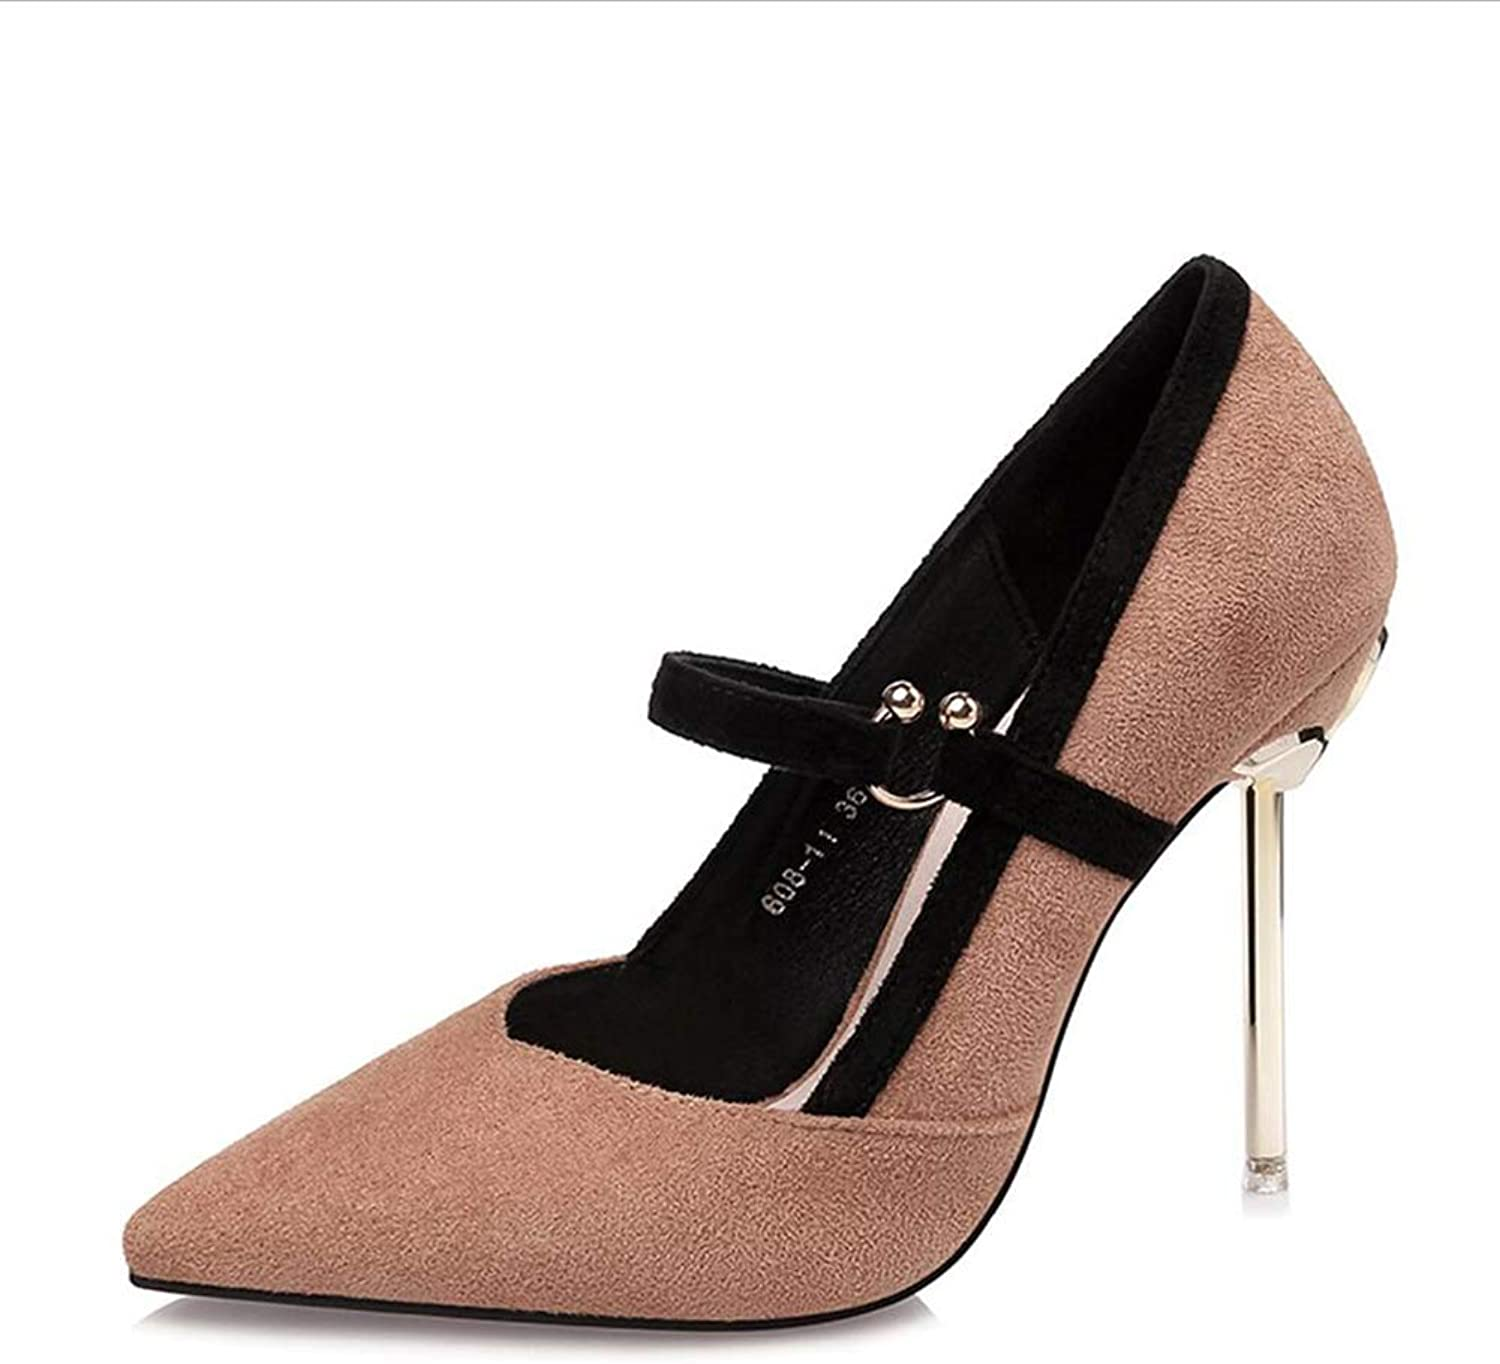 Court shoes Women's shoes shoes High Heel Shallow Mouth Pointed Nightclubs Sexy Suede Metal Fine Heel Woman Single Haiming (color   Khaki, Size   36)